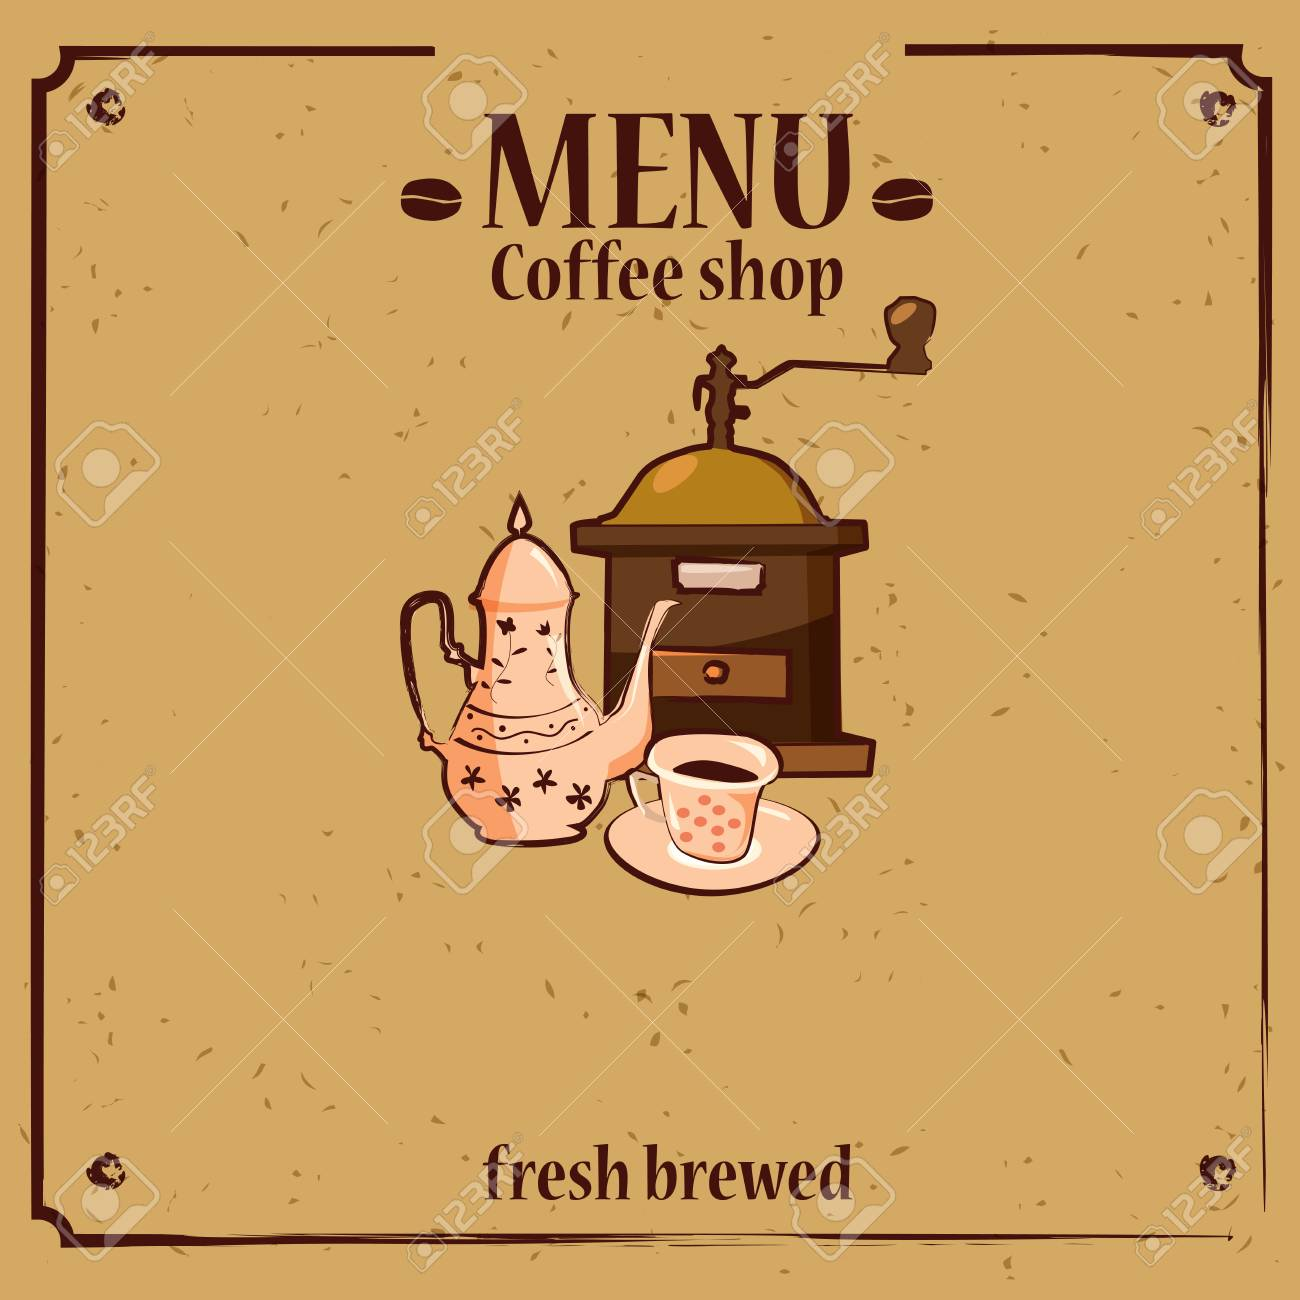 Coffee Menu Template For Shop With Grinder Pot Cup Cartoon